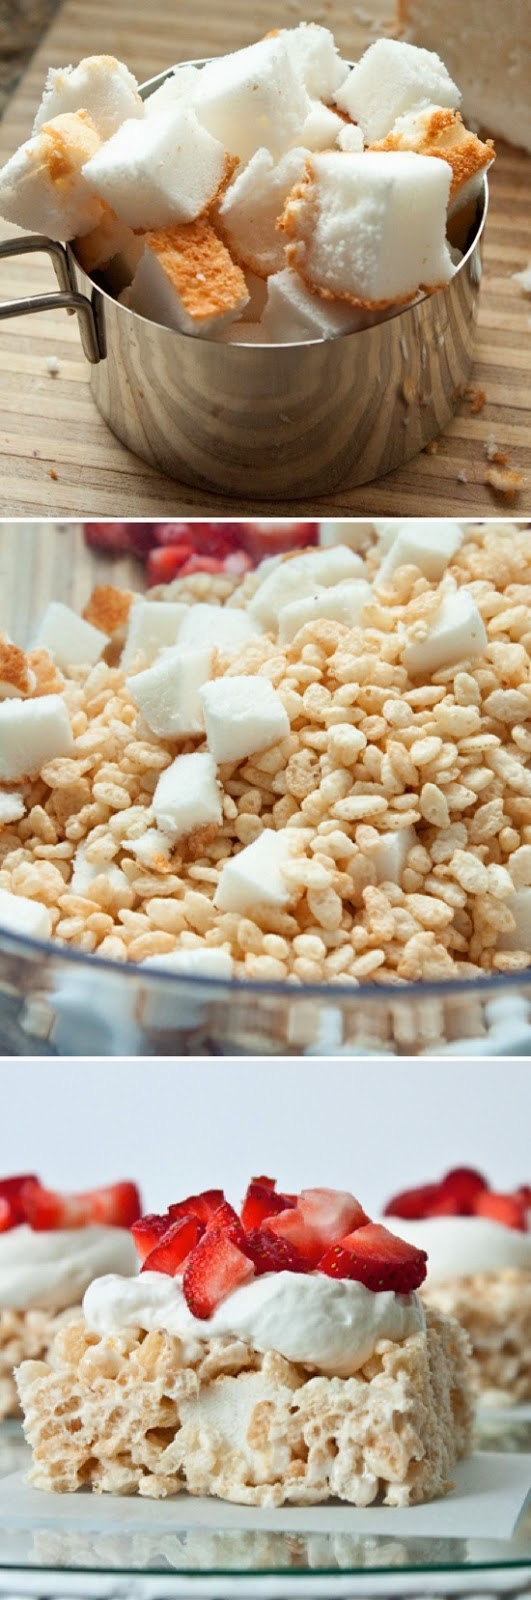 How To Make Strawberry Shortcake Rice Krispie Treats